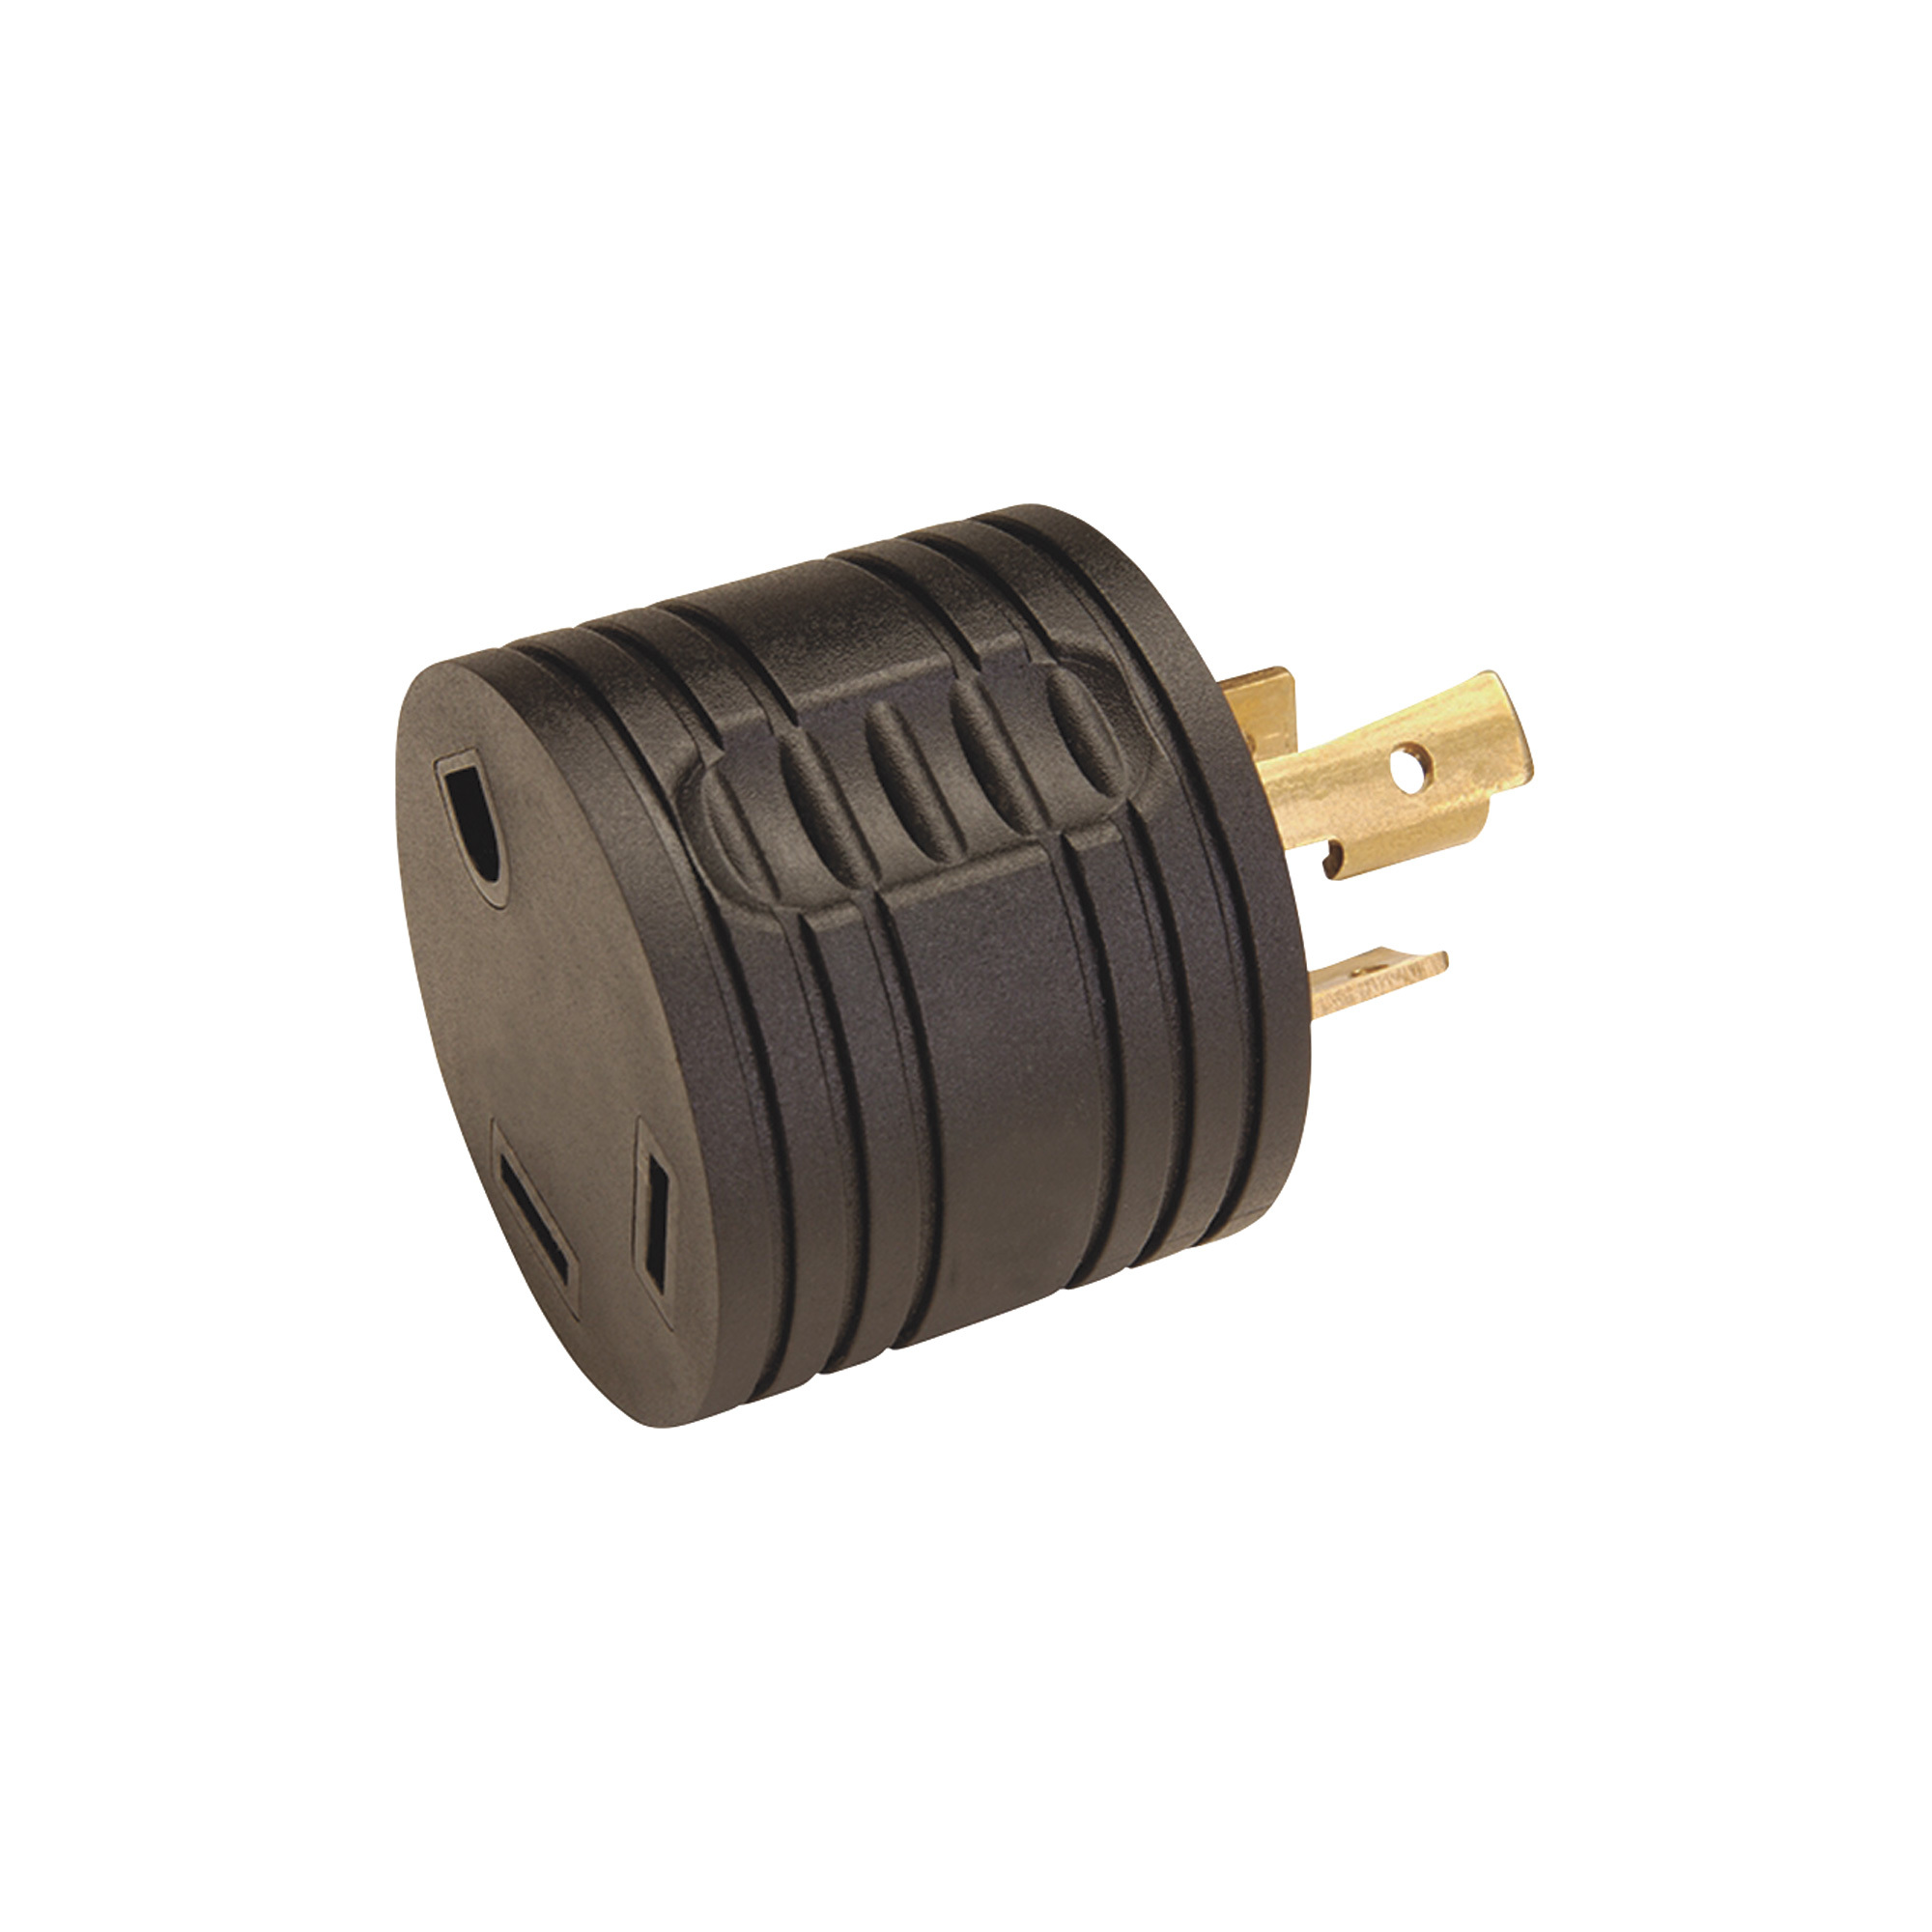 Generator Cords Northern Tool Equipment 4 Wire To 3 220v Receptacle Wiring Advantage Exclusive Reliance Adapter Plug Convert L5 30 Rv Model Ap31rv